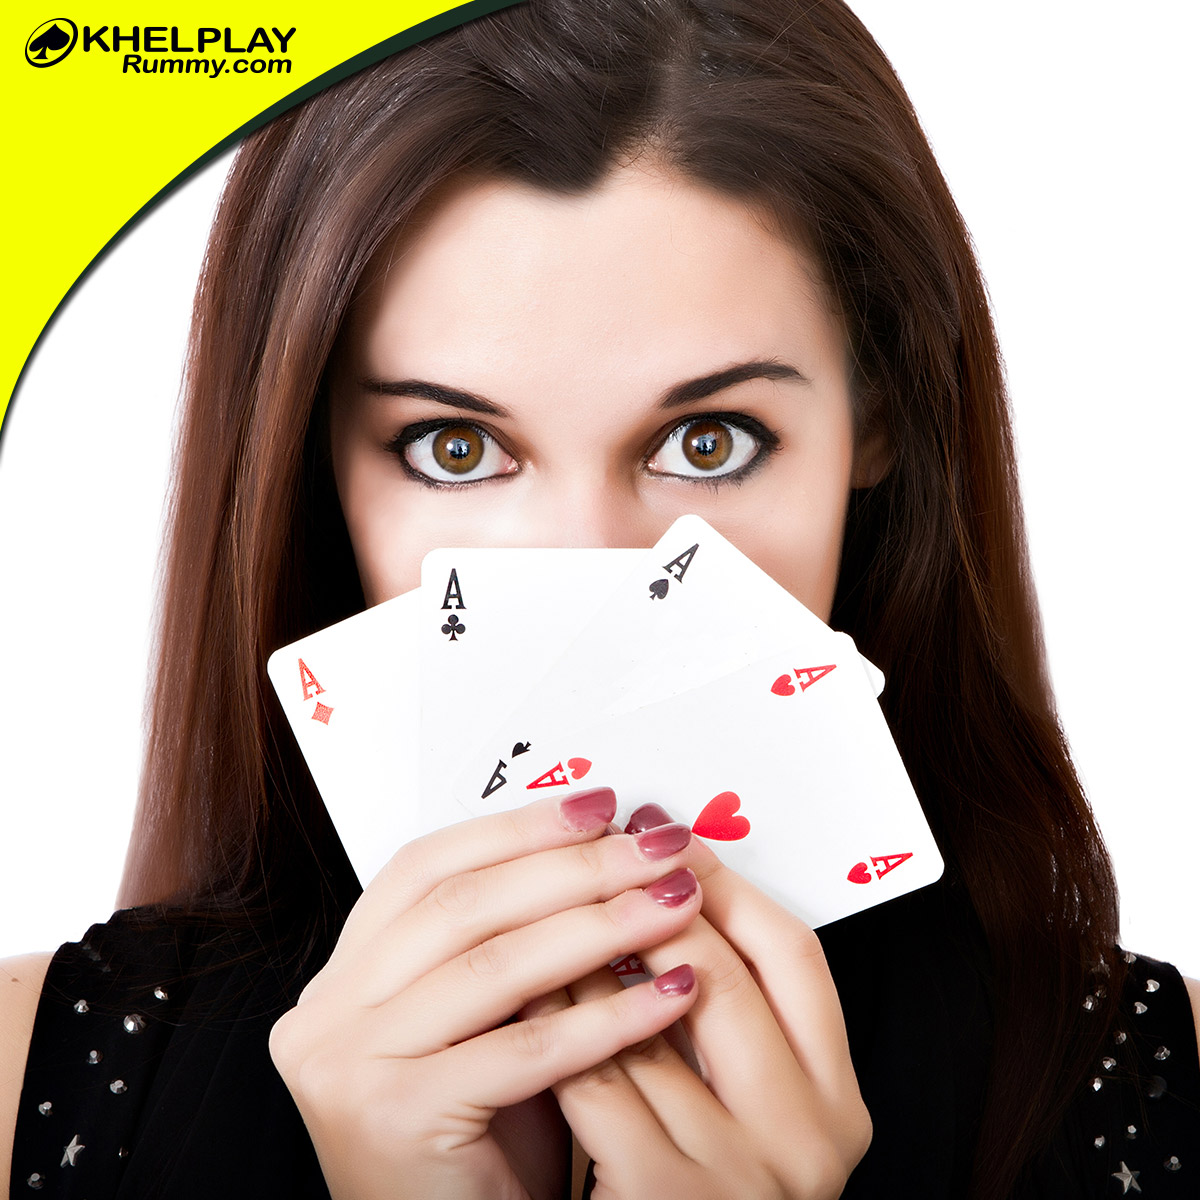 How a Rummy Newbie Can Turn Into a Confident Winner